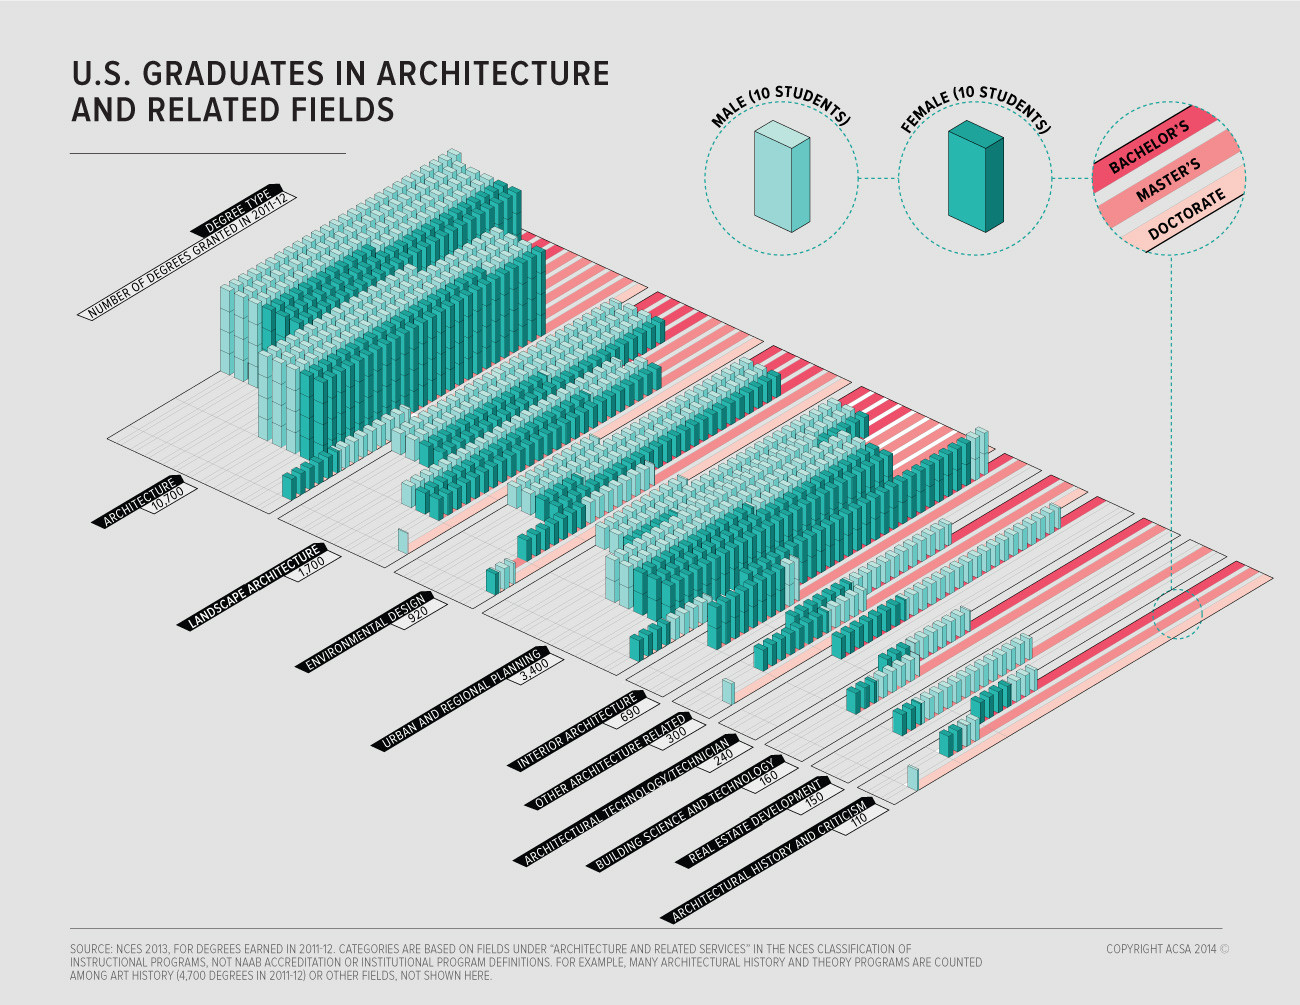 At almost every degree level in almost every architecture-related field, more men are getting degrees women. The only field where the tables were turned? Interior Architecture. Image Courtesy of ACSA